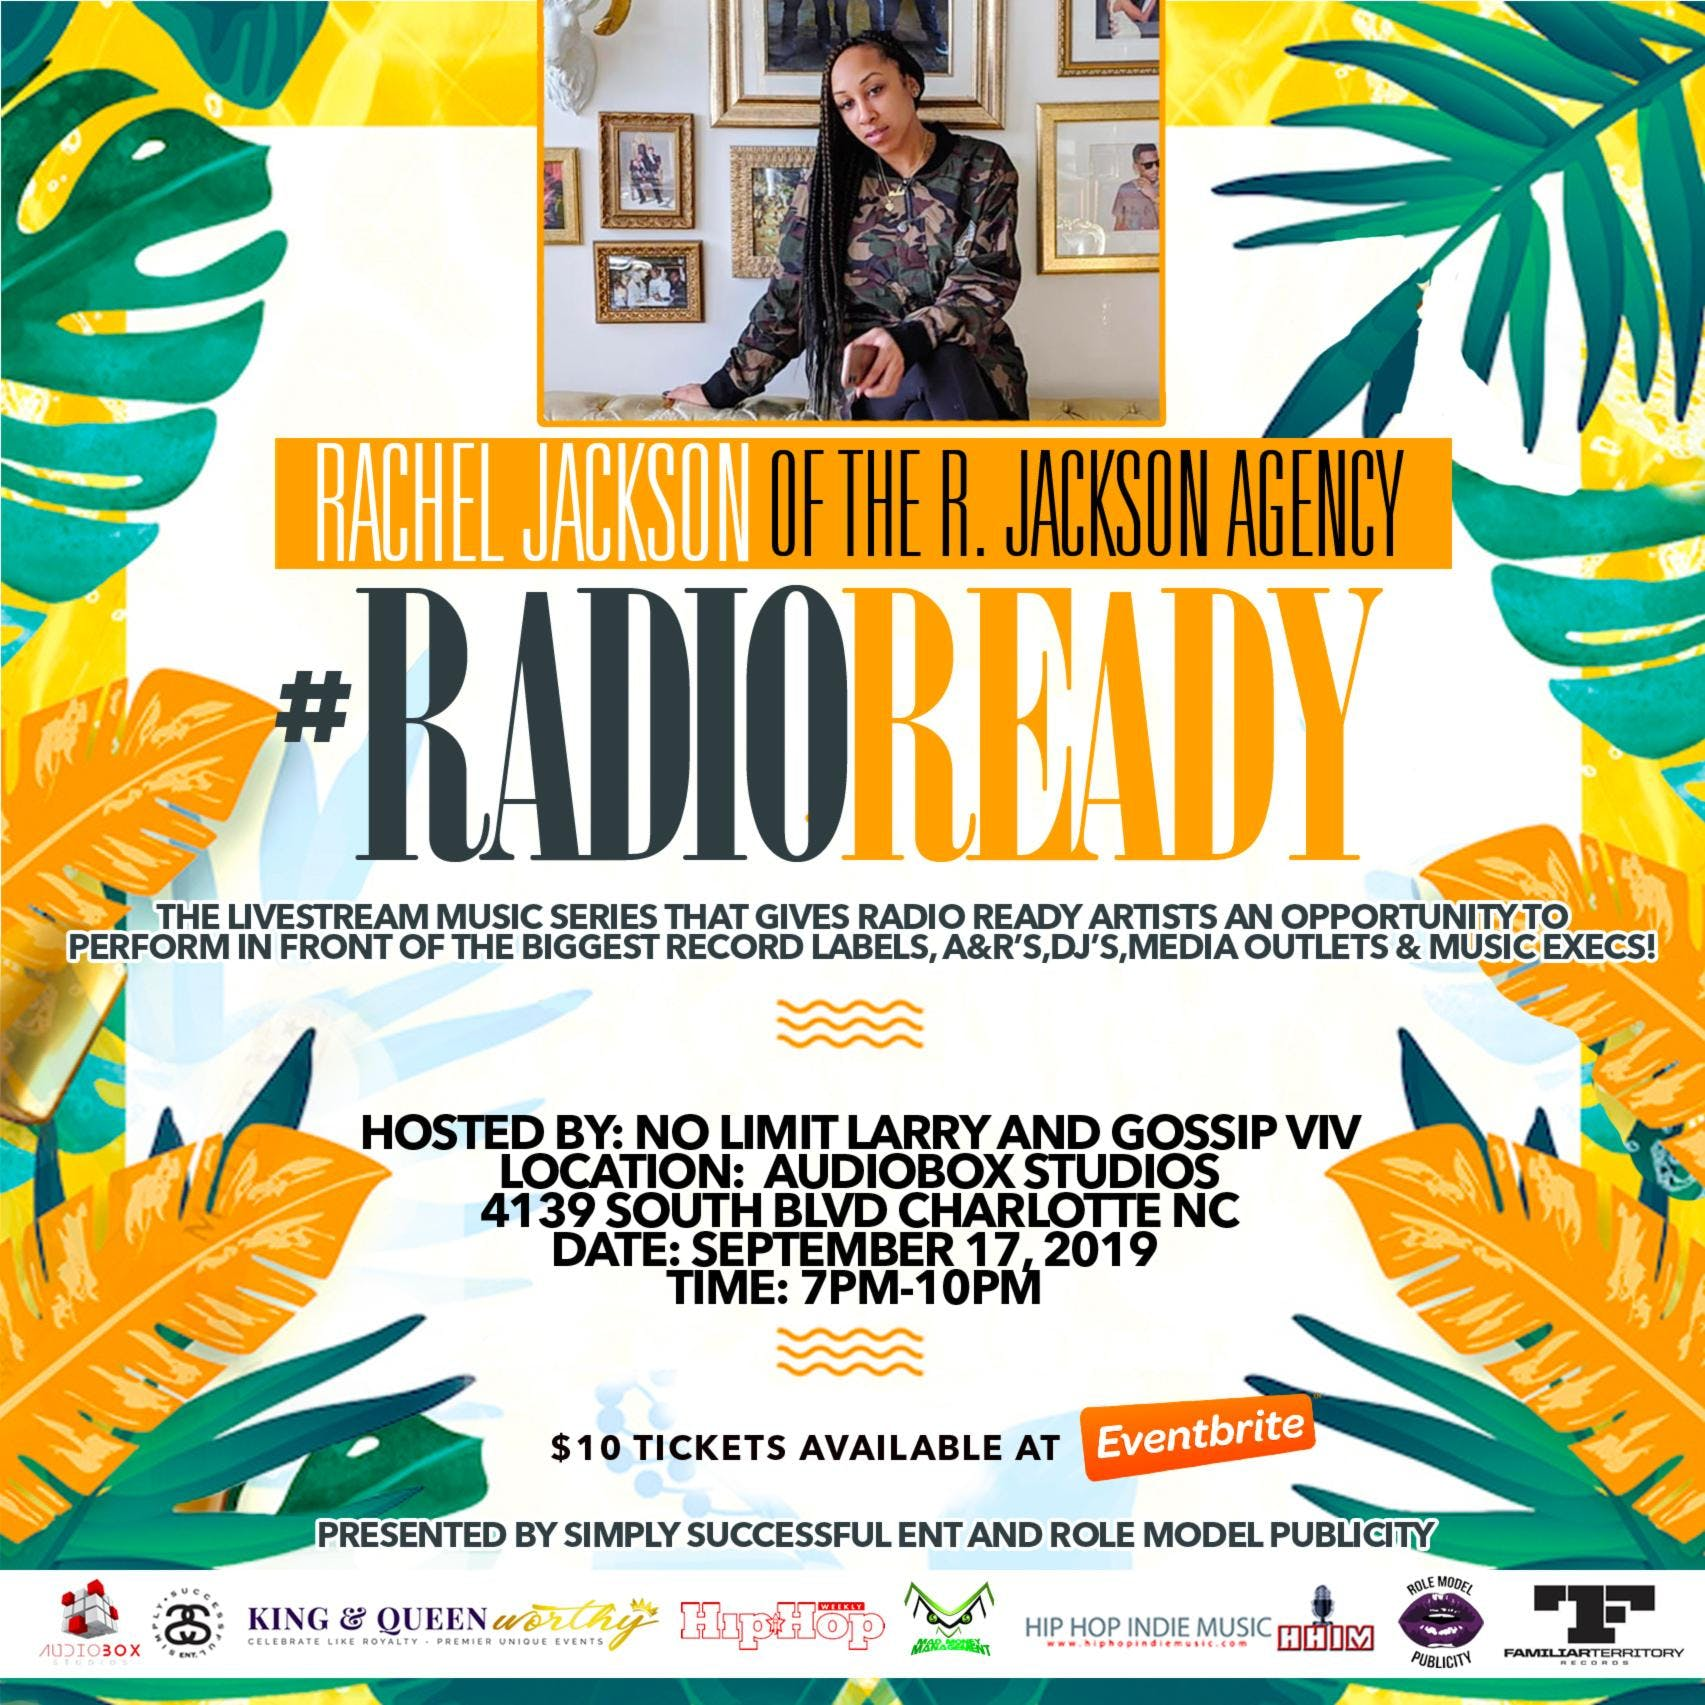 #RadioReady The Livestream Music Series